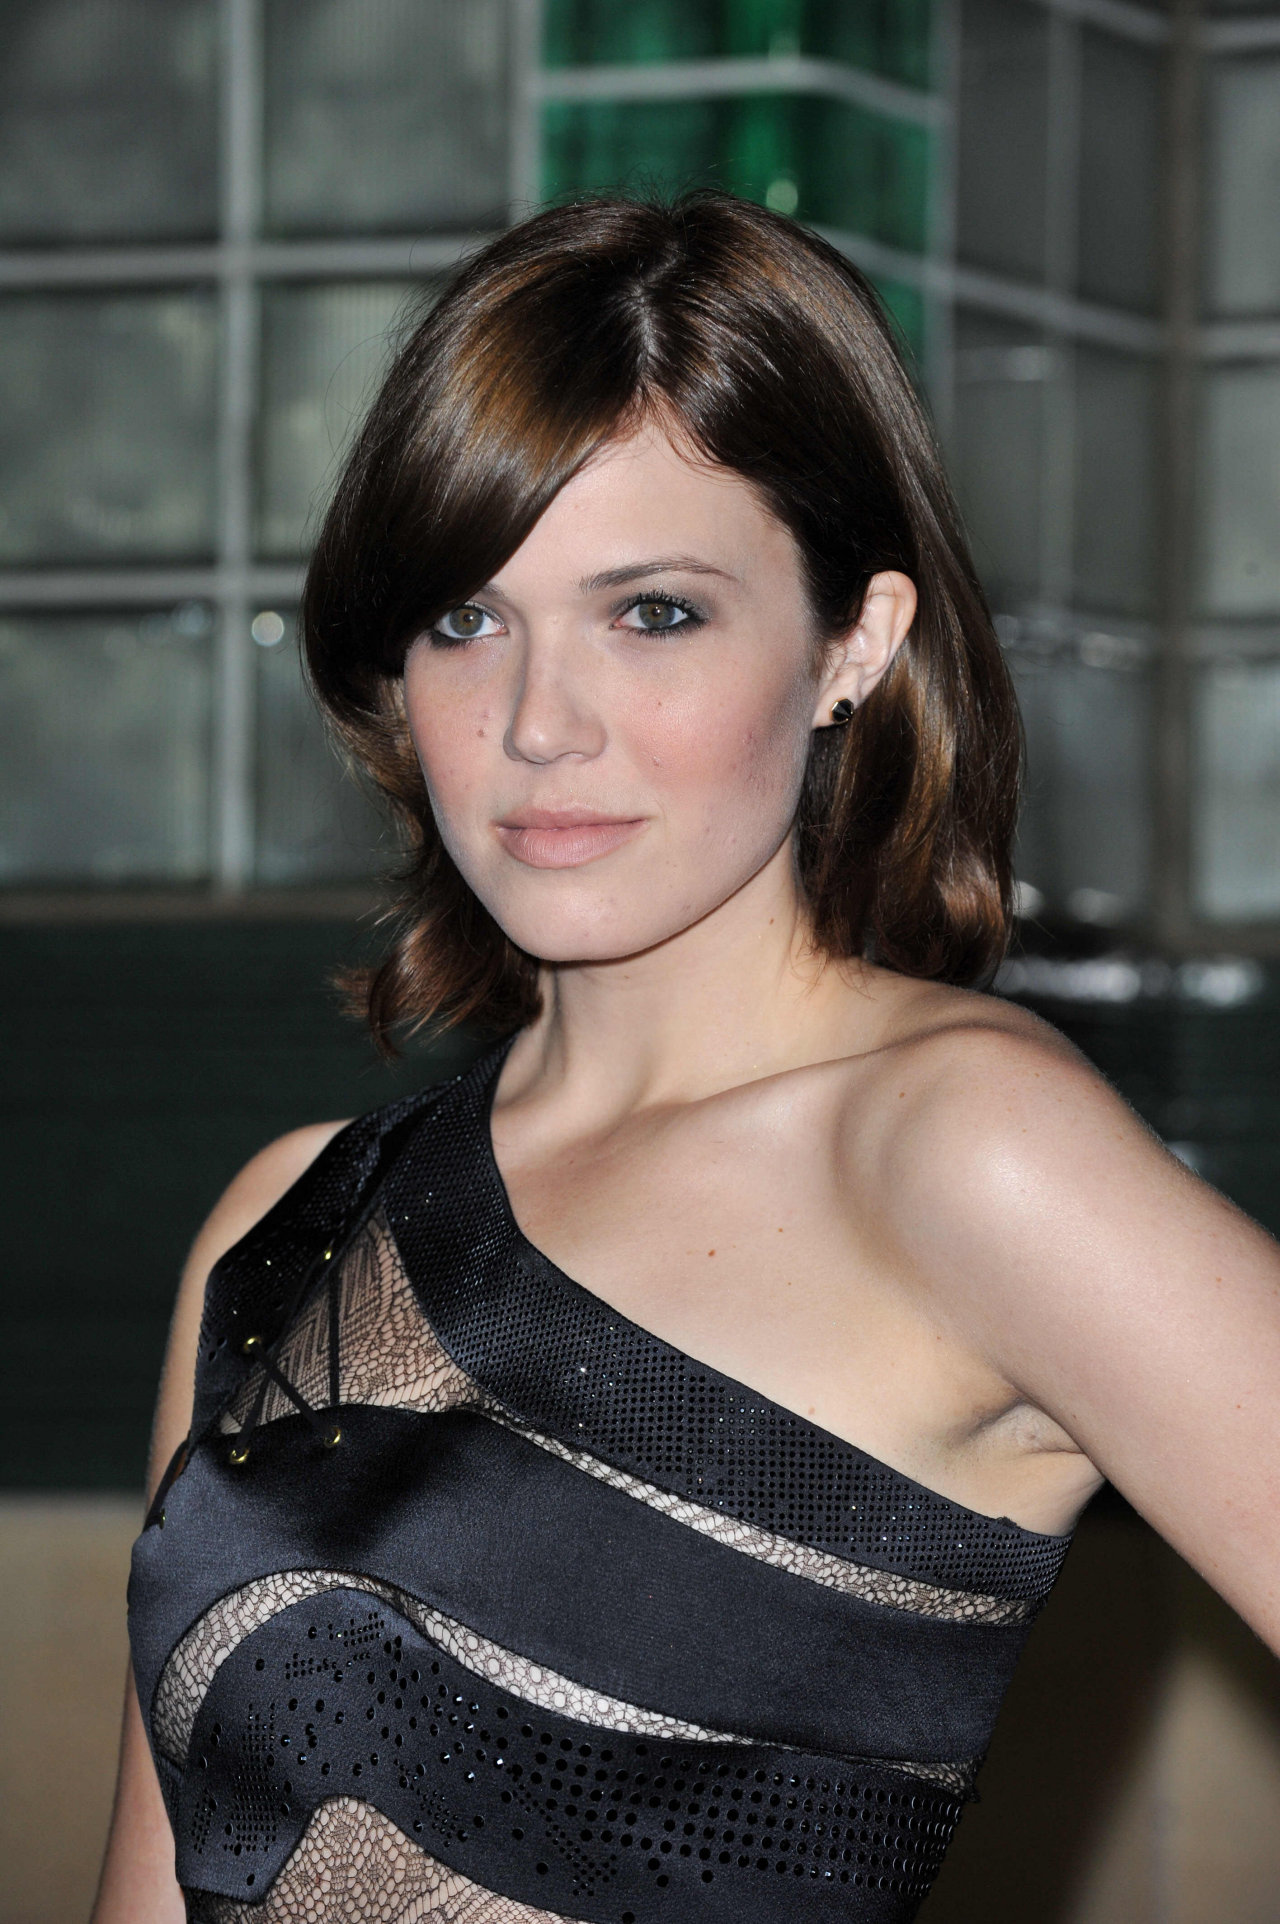 Mandy Moore leaked wallpapers